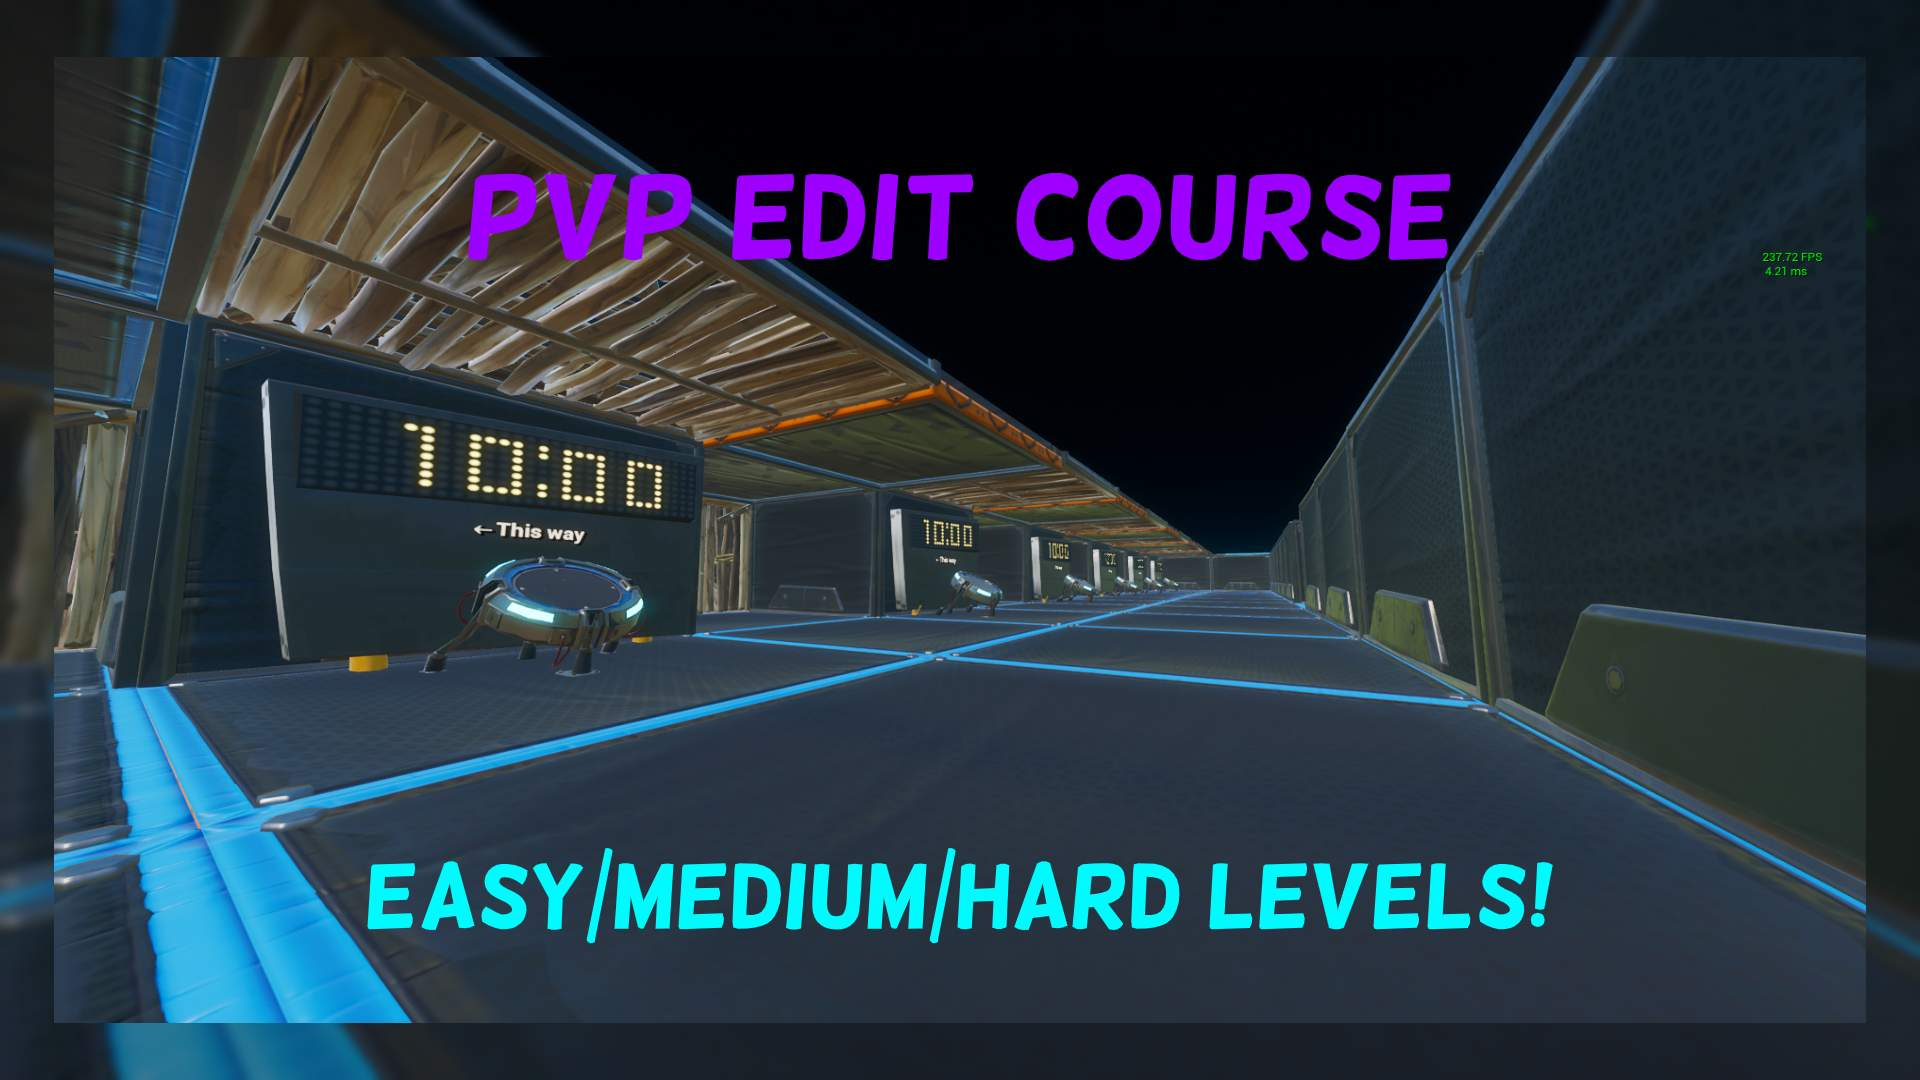 PVP EDIT COURSE RACE EASY/MEDIUM/HARD